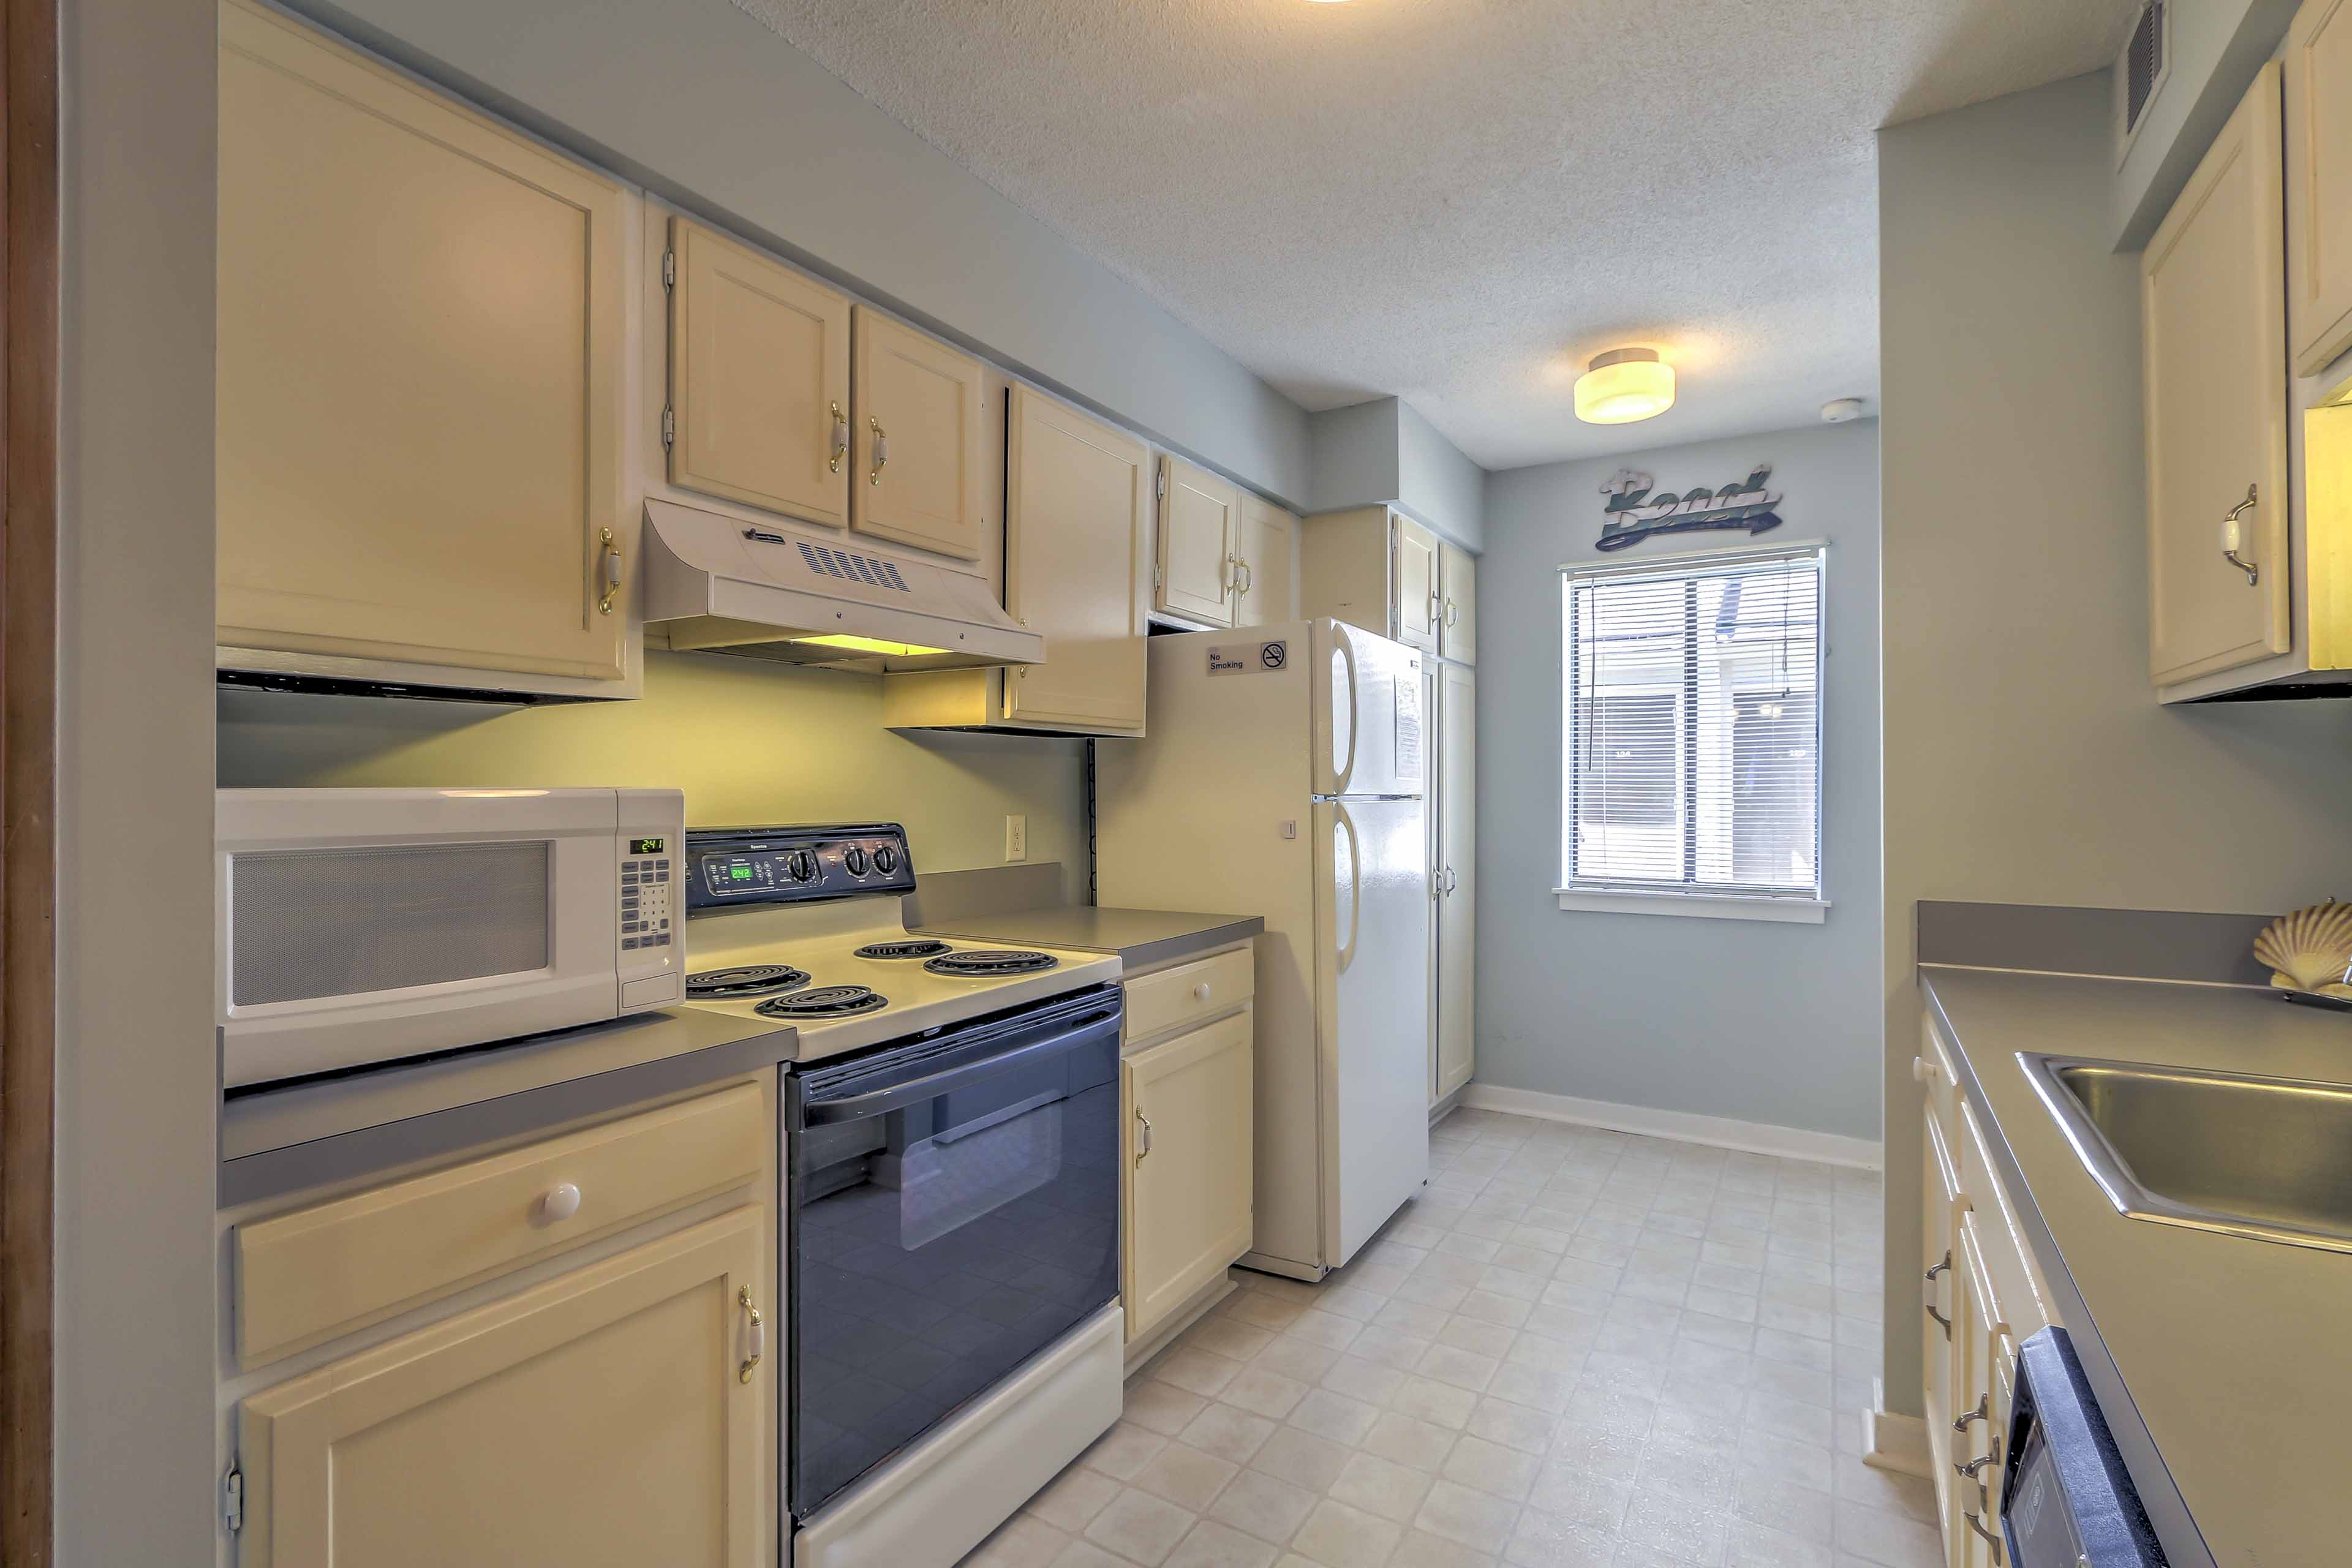 The fully equipped kitchen has all the appliances you'll need to prepare meals.